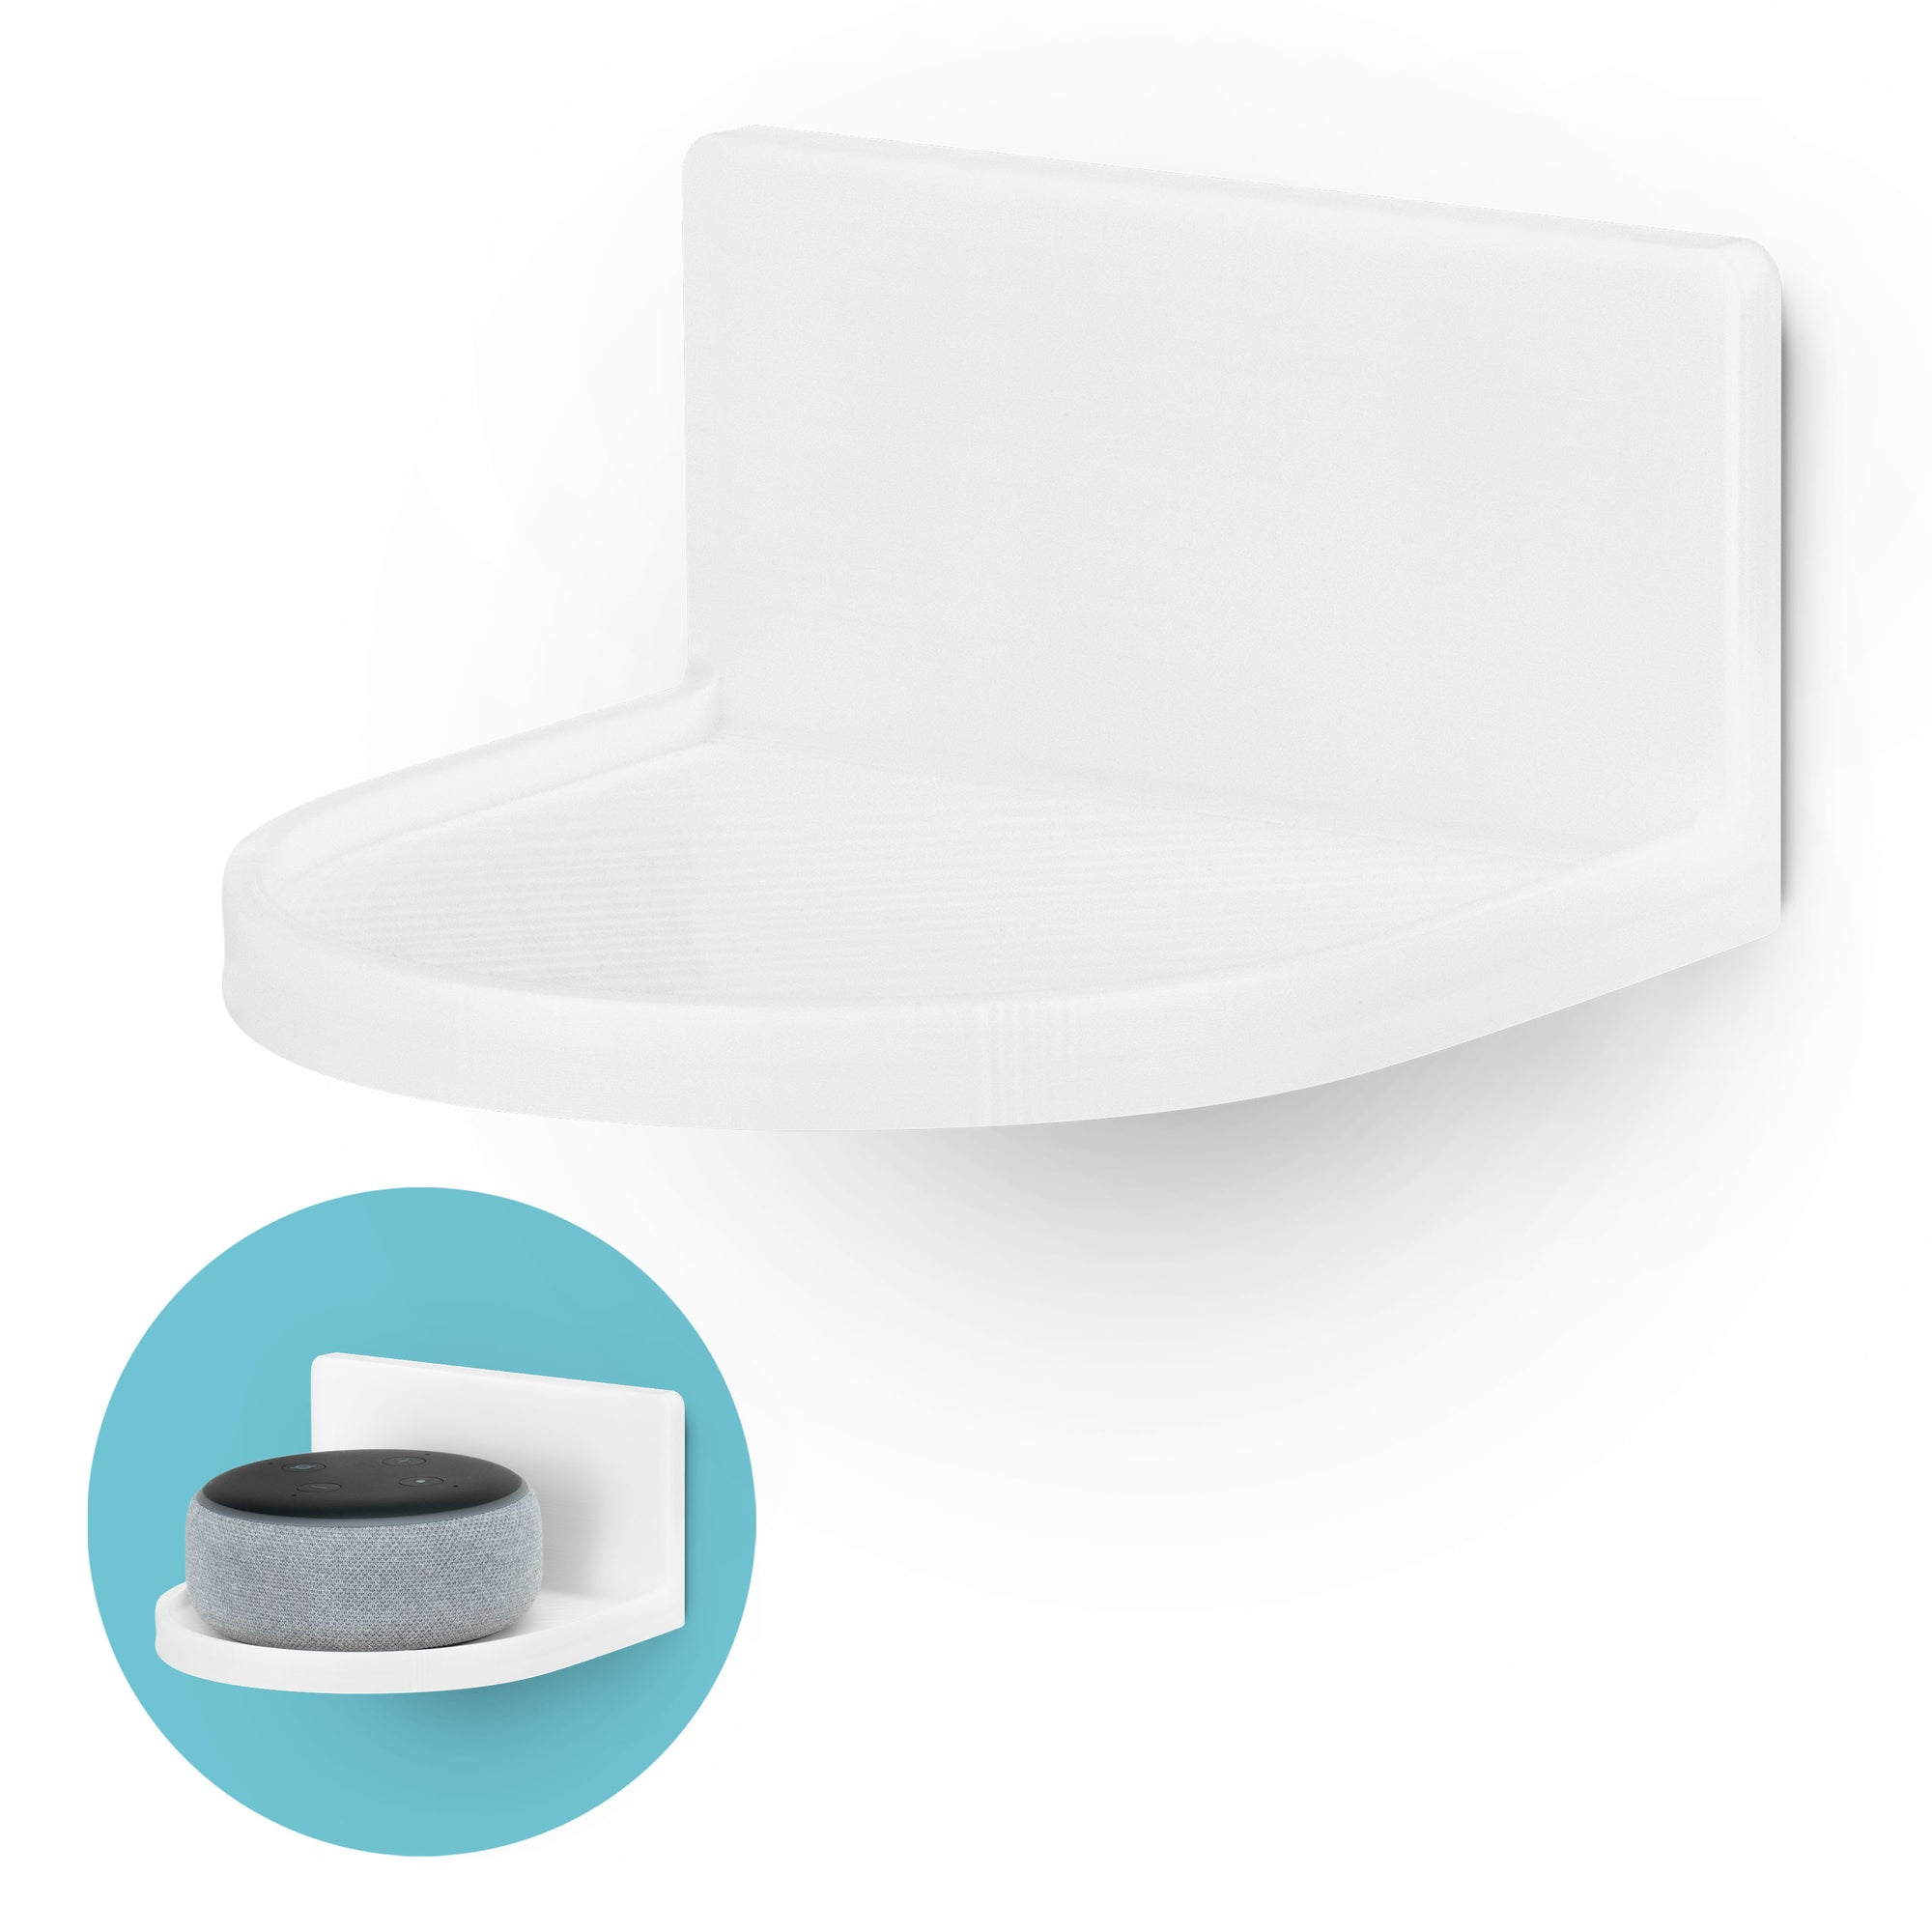 "Screwless Round Floating Shelf (CF125) for Security Cameras, Baby Monitors, Speakers, Plants & More (118mm / 4.6"" x 108mm / 4.2"")"